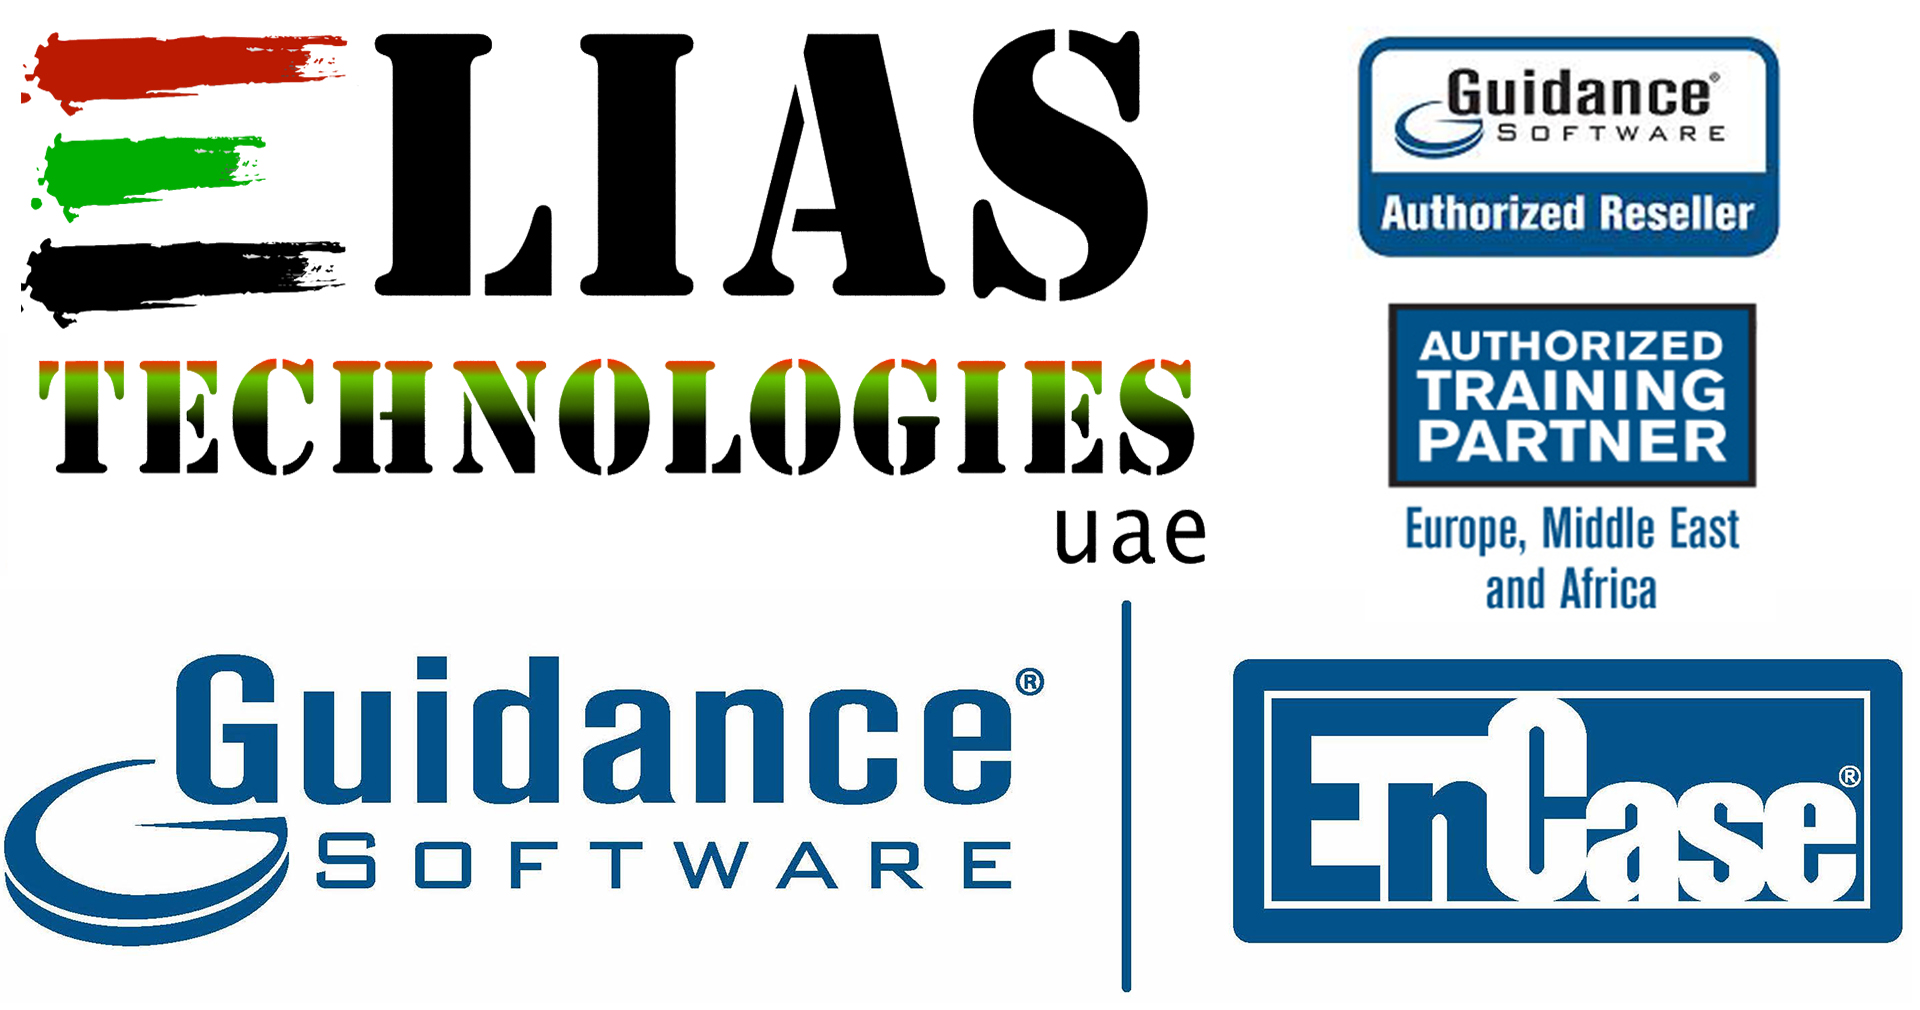 Elias Technologies - Guidance Software